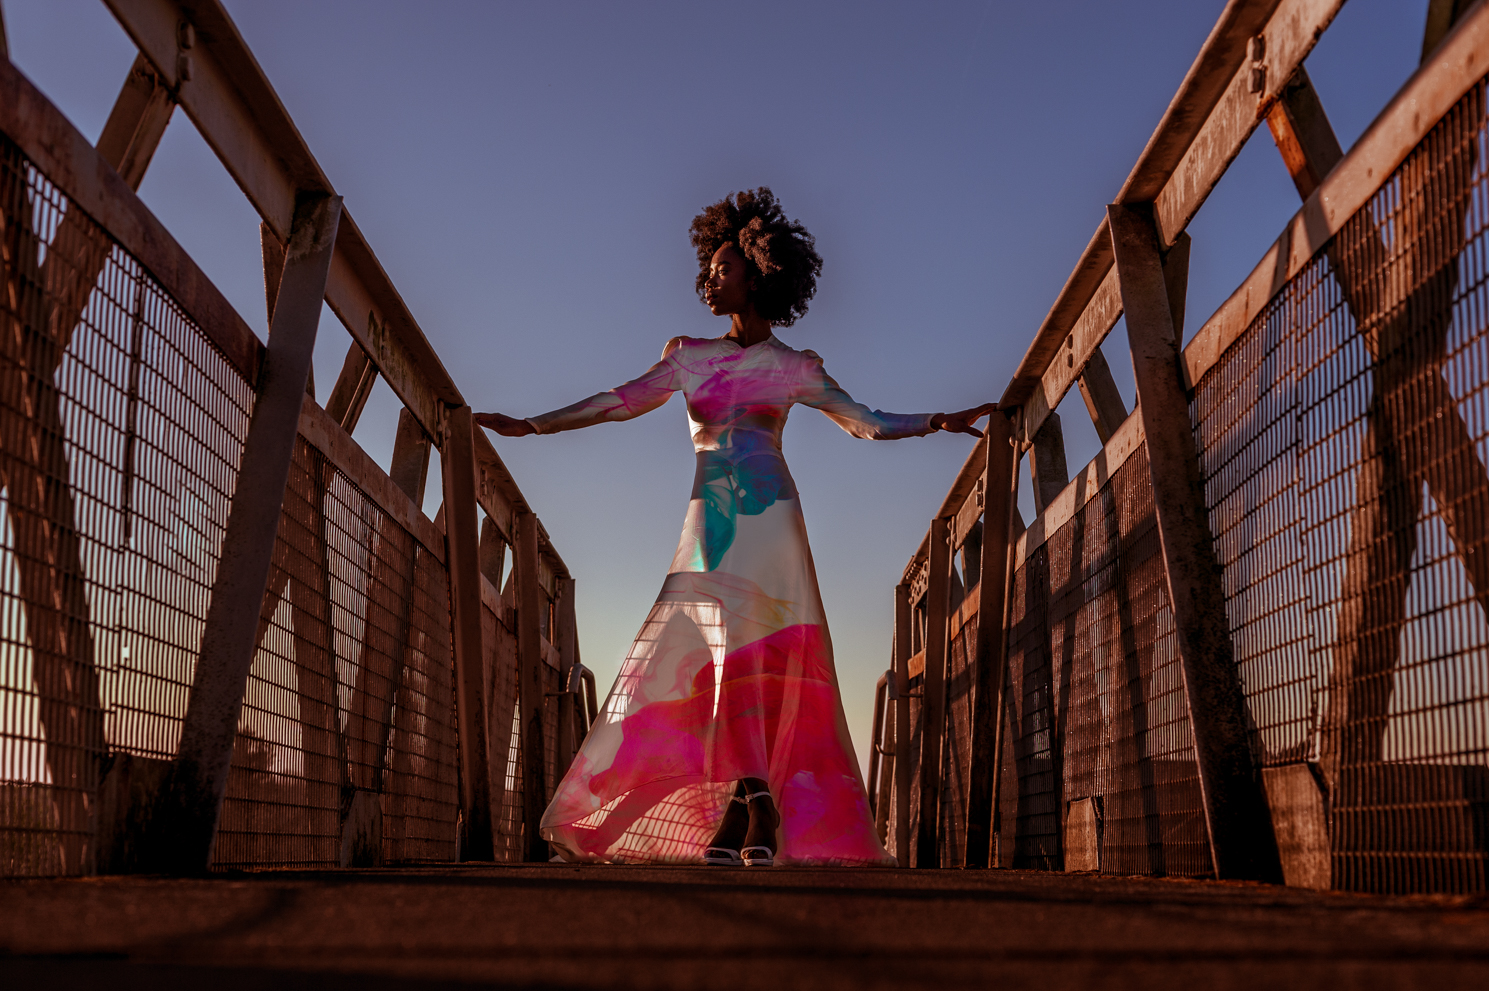 Colours. African queen and model photographed by Farnham, Surrey based fashion and portrait photographer James Muller